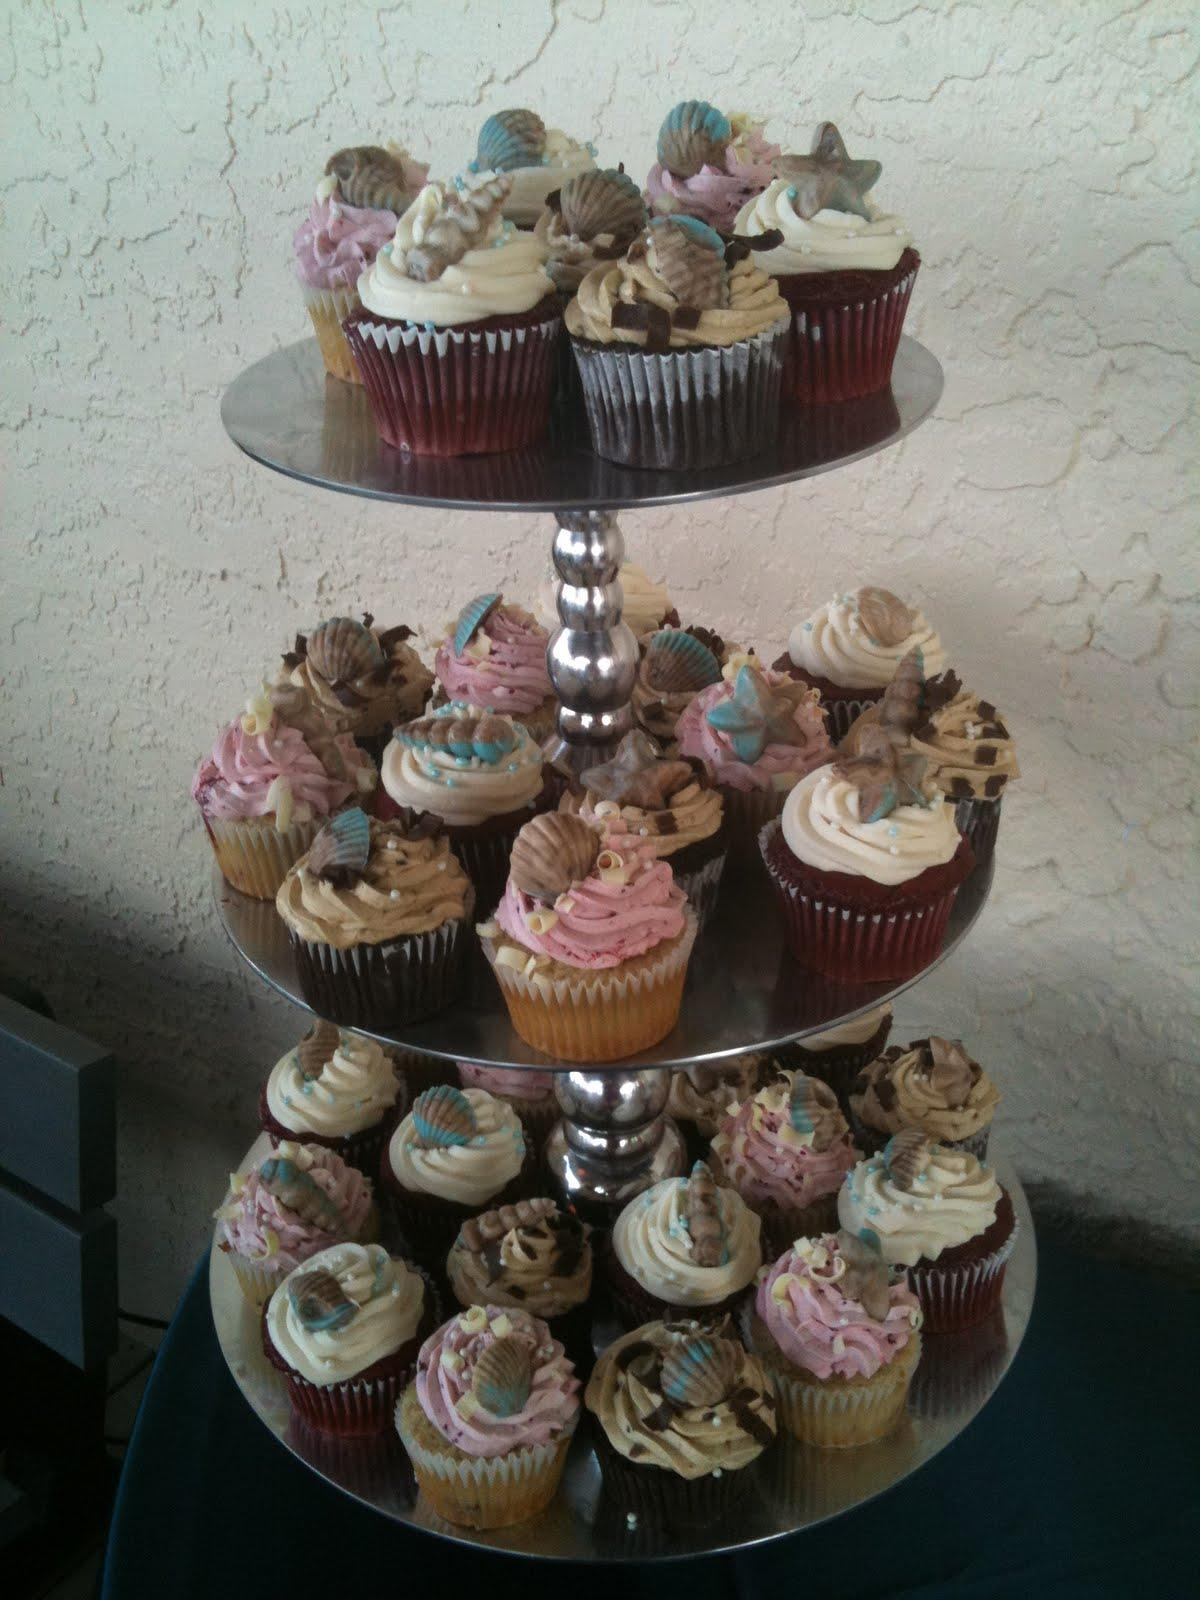 This cupcake tower was perfect